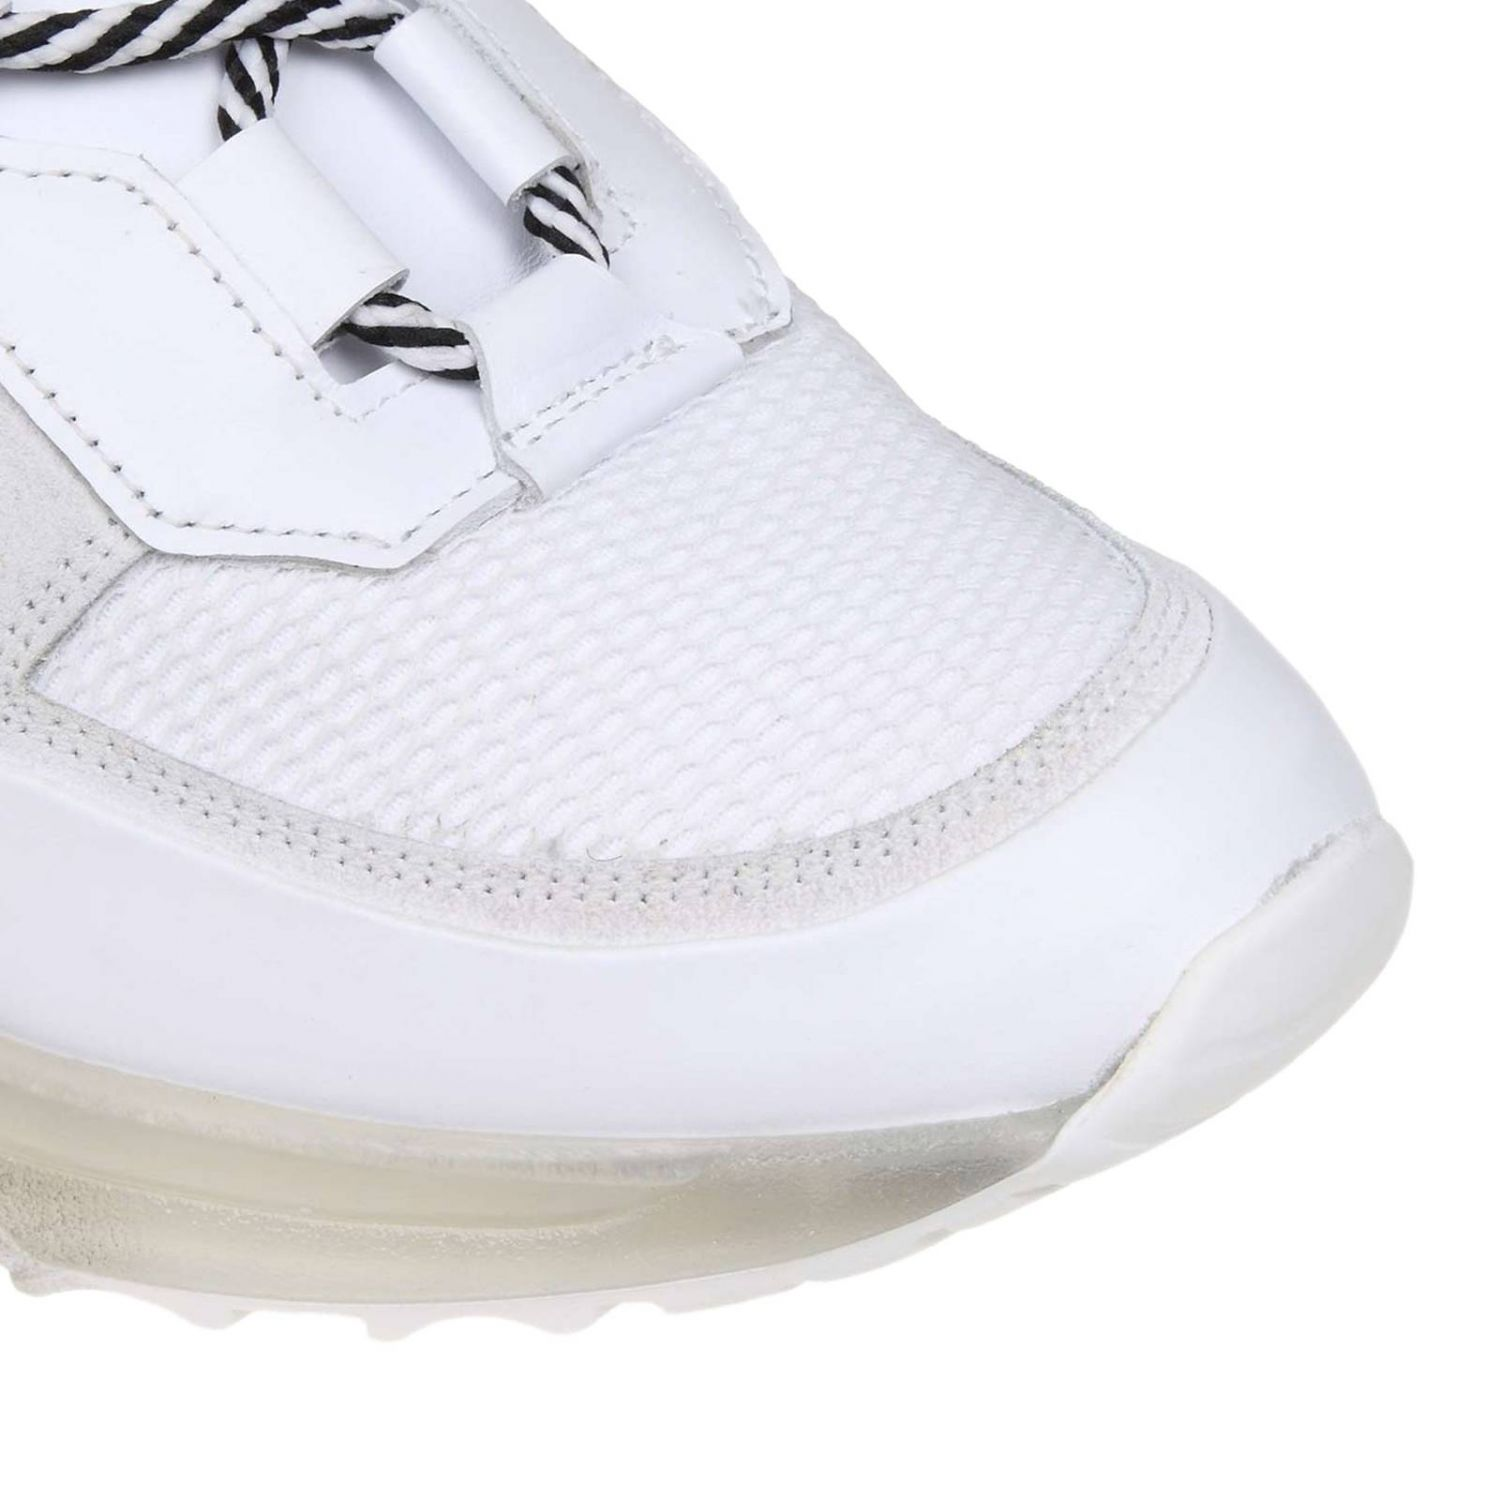 Sneakers women Leather Crown white 3